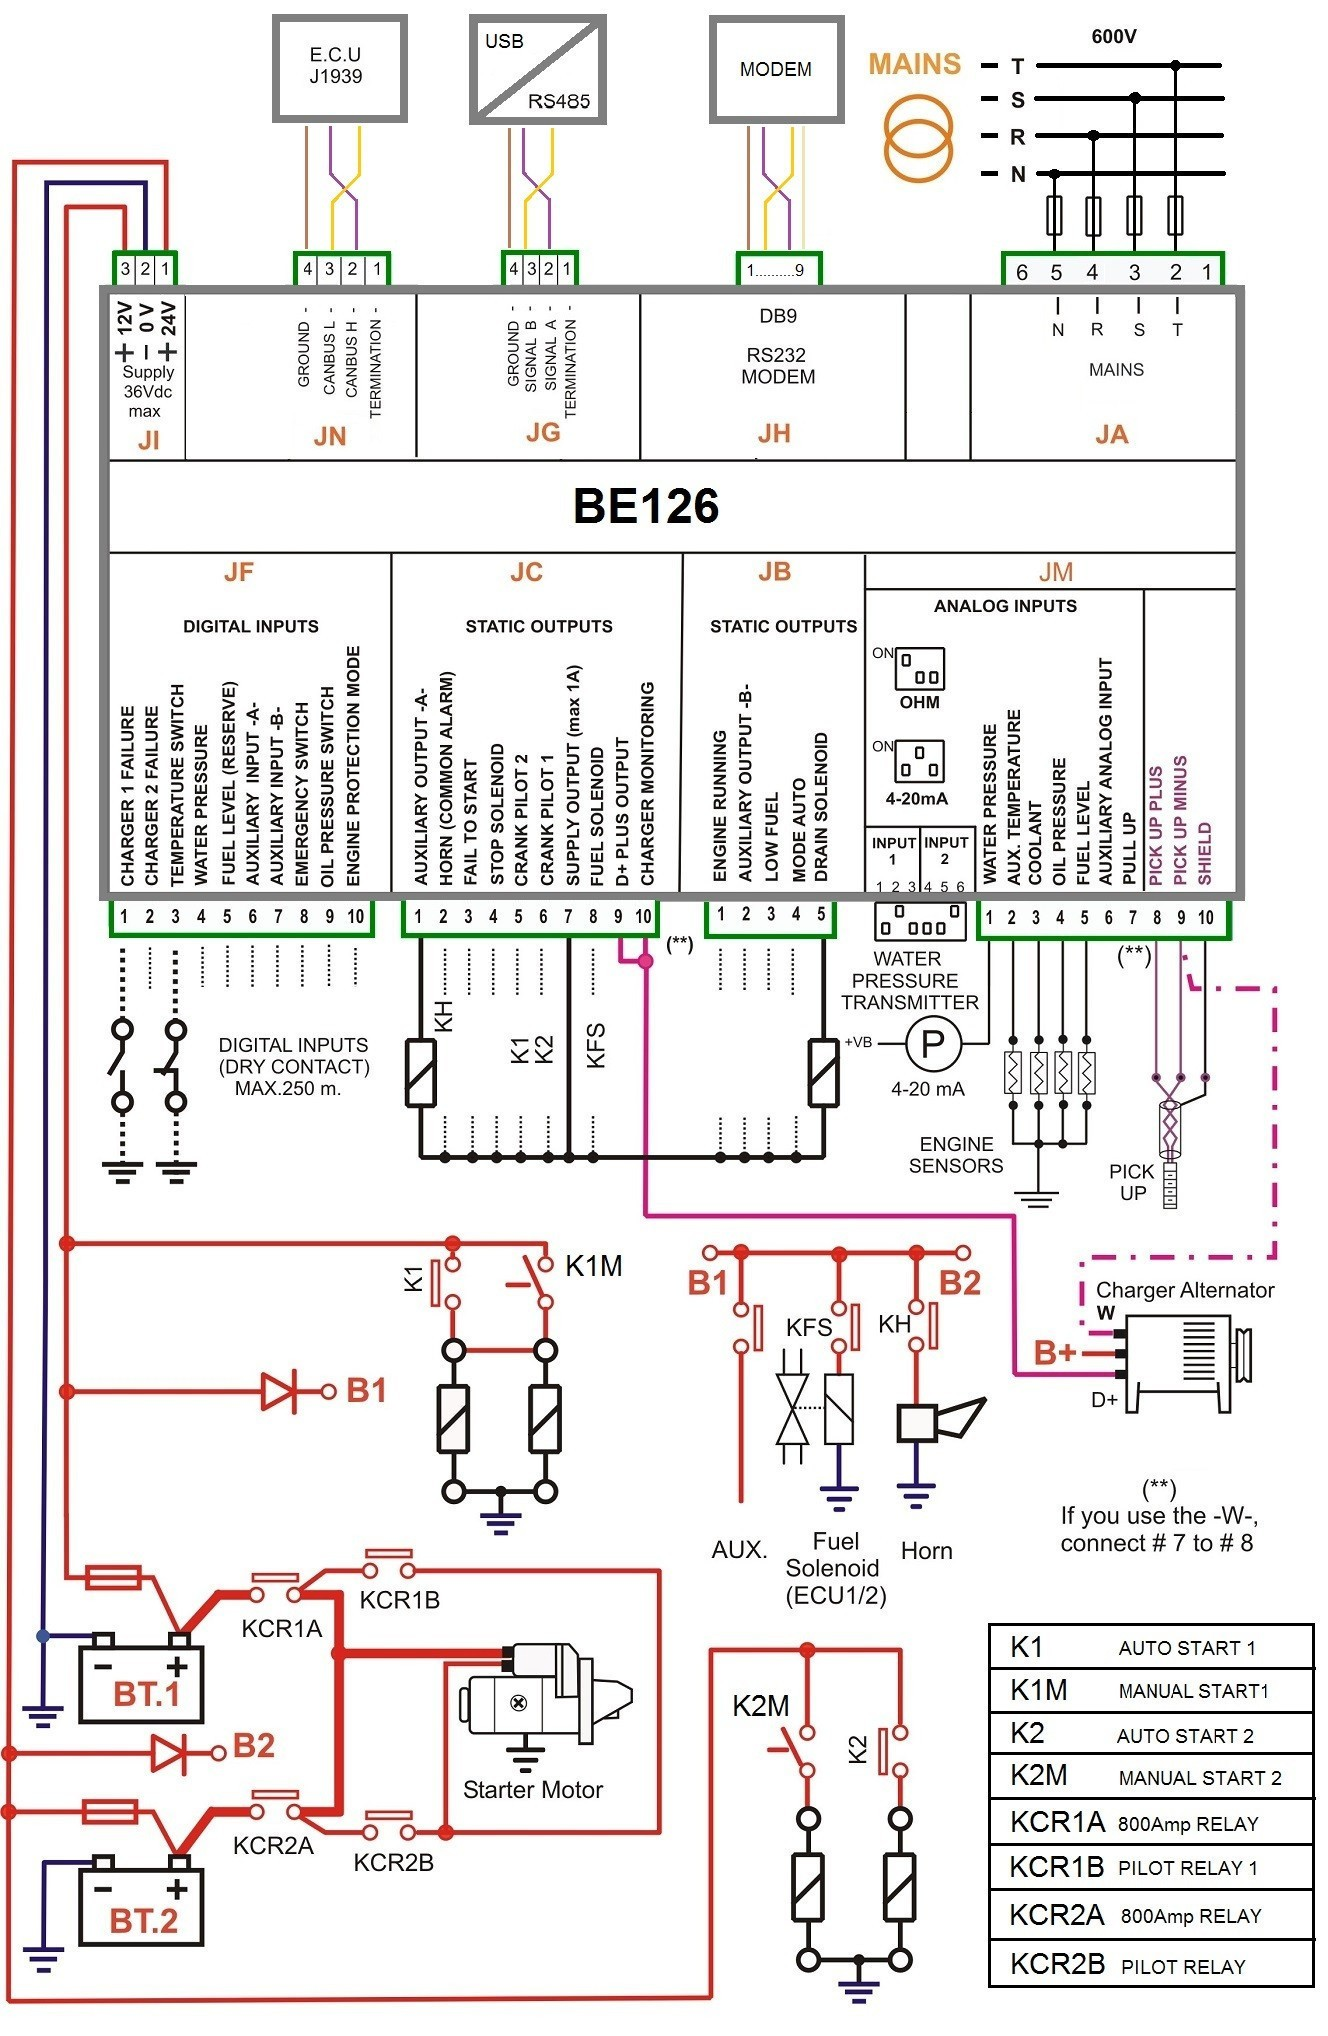 Fire Alarm Wiring Diagram Valid Wiring Diagram For Addressable Fire Alarm  System Lukaszmira